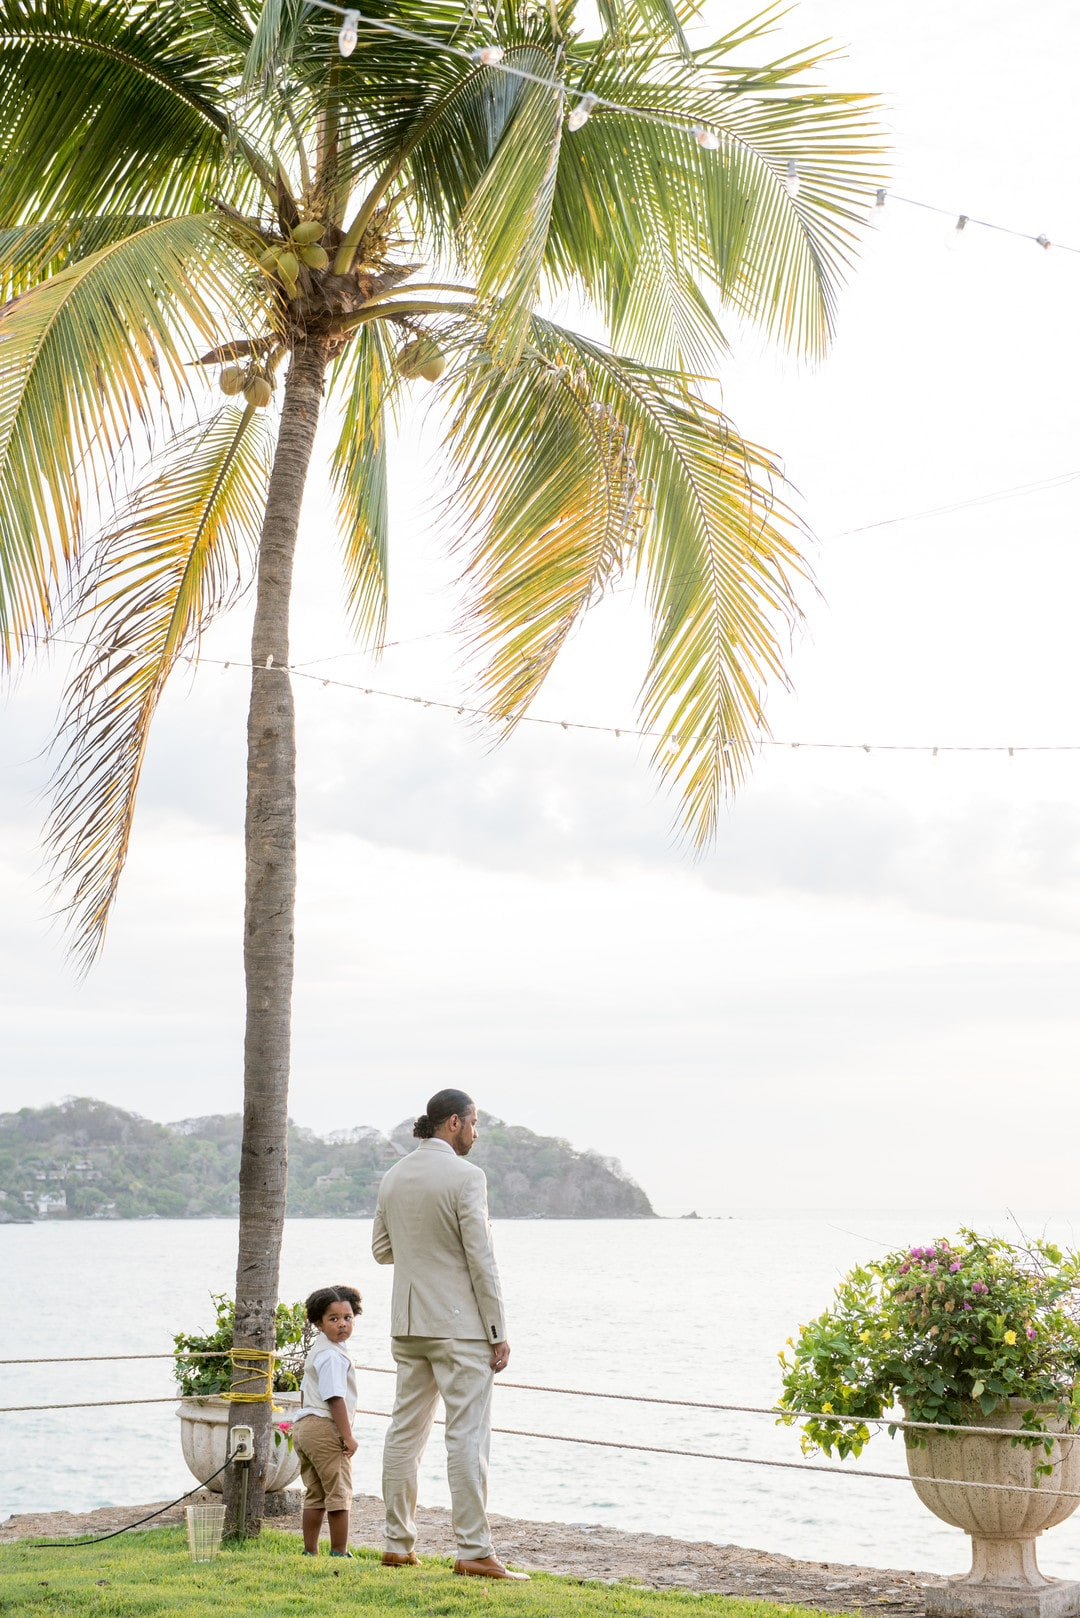 Camille & Kenny's Enchanting and Romantic Destination Wedding in Mexico, Photography by Joann Arruda Photography for Destination Wedding Blog Adriana Weddings